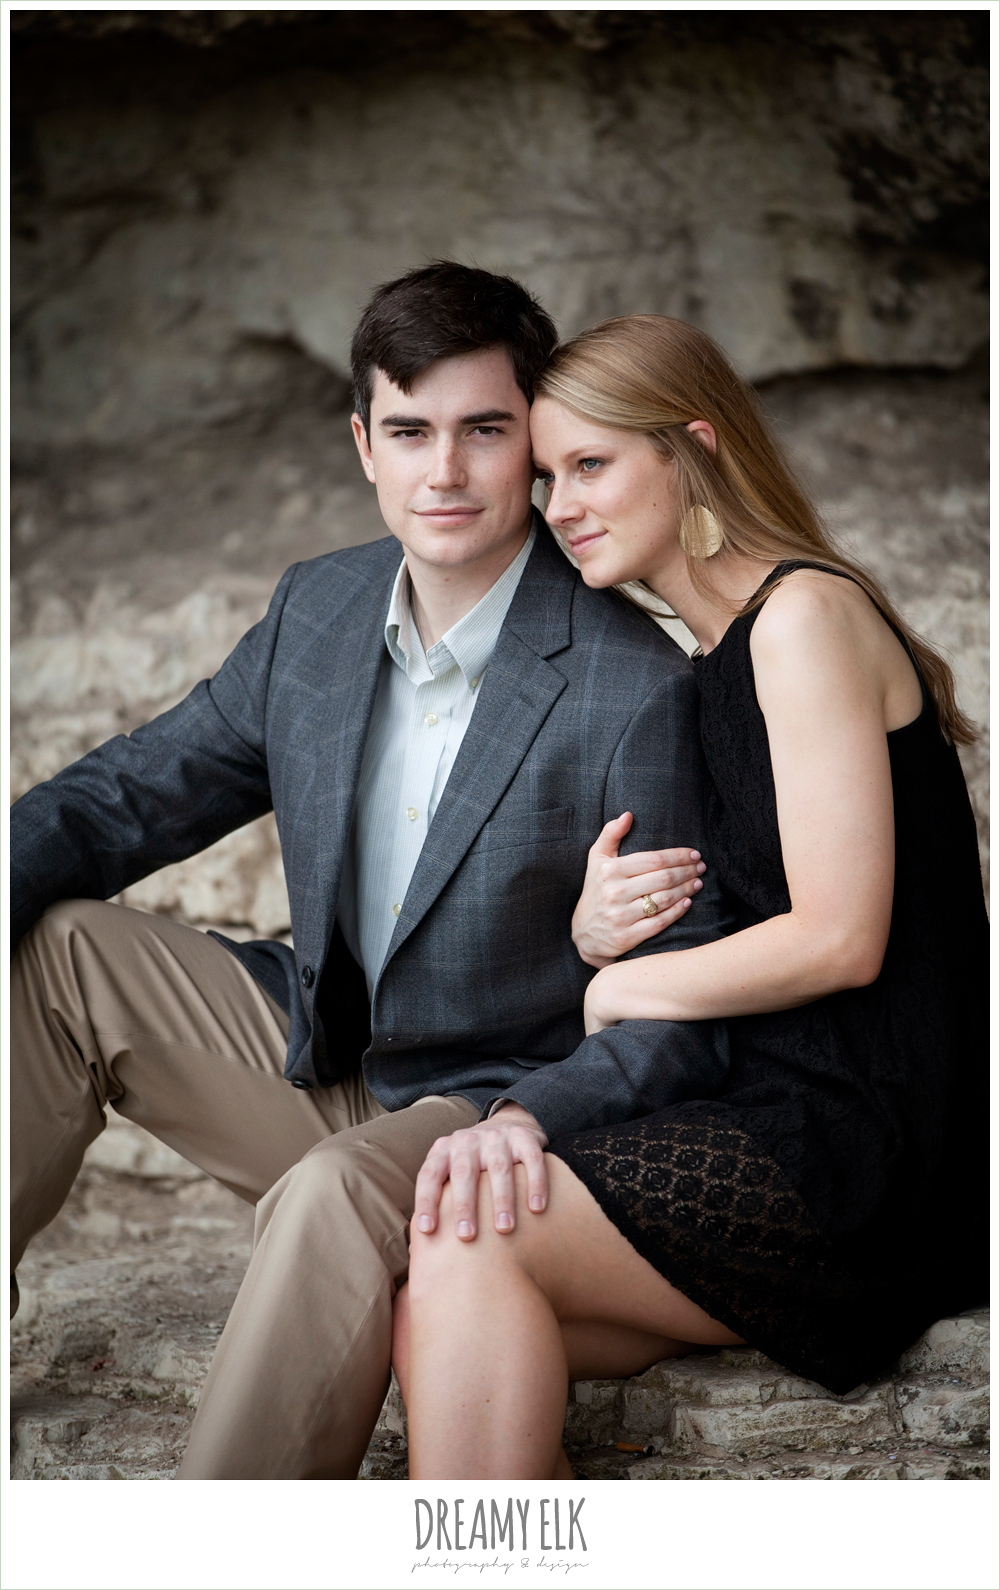 erin & cal, engagement photo contest, zilker park, austin